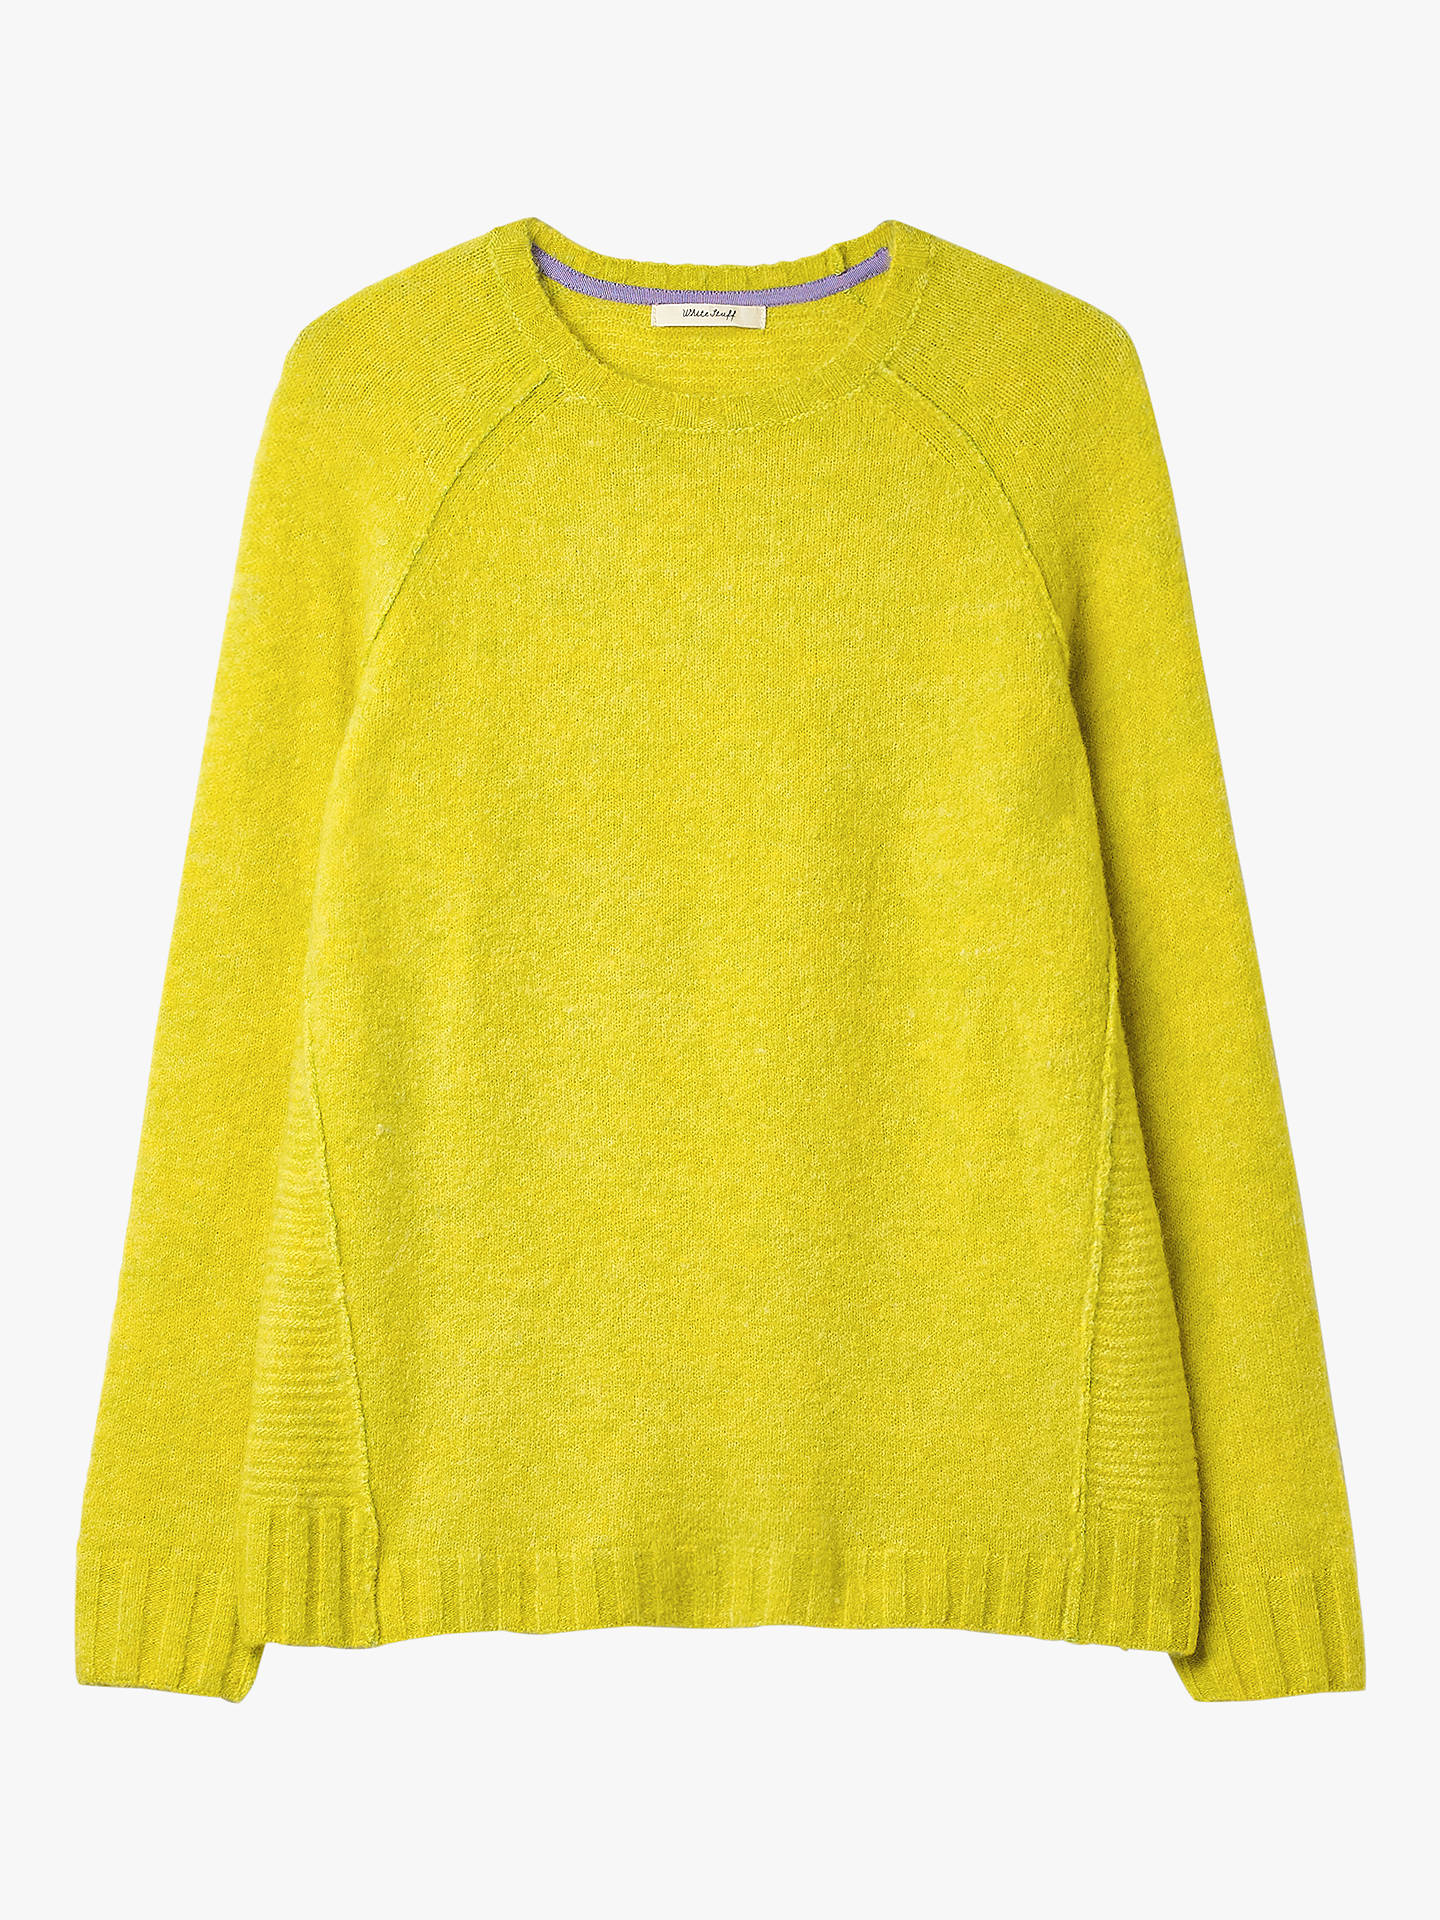 BuyWhite Stuff Warren Jumper, Kiwi Green, 6 Online at johnlewis.com